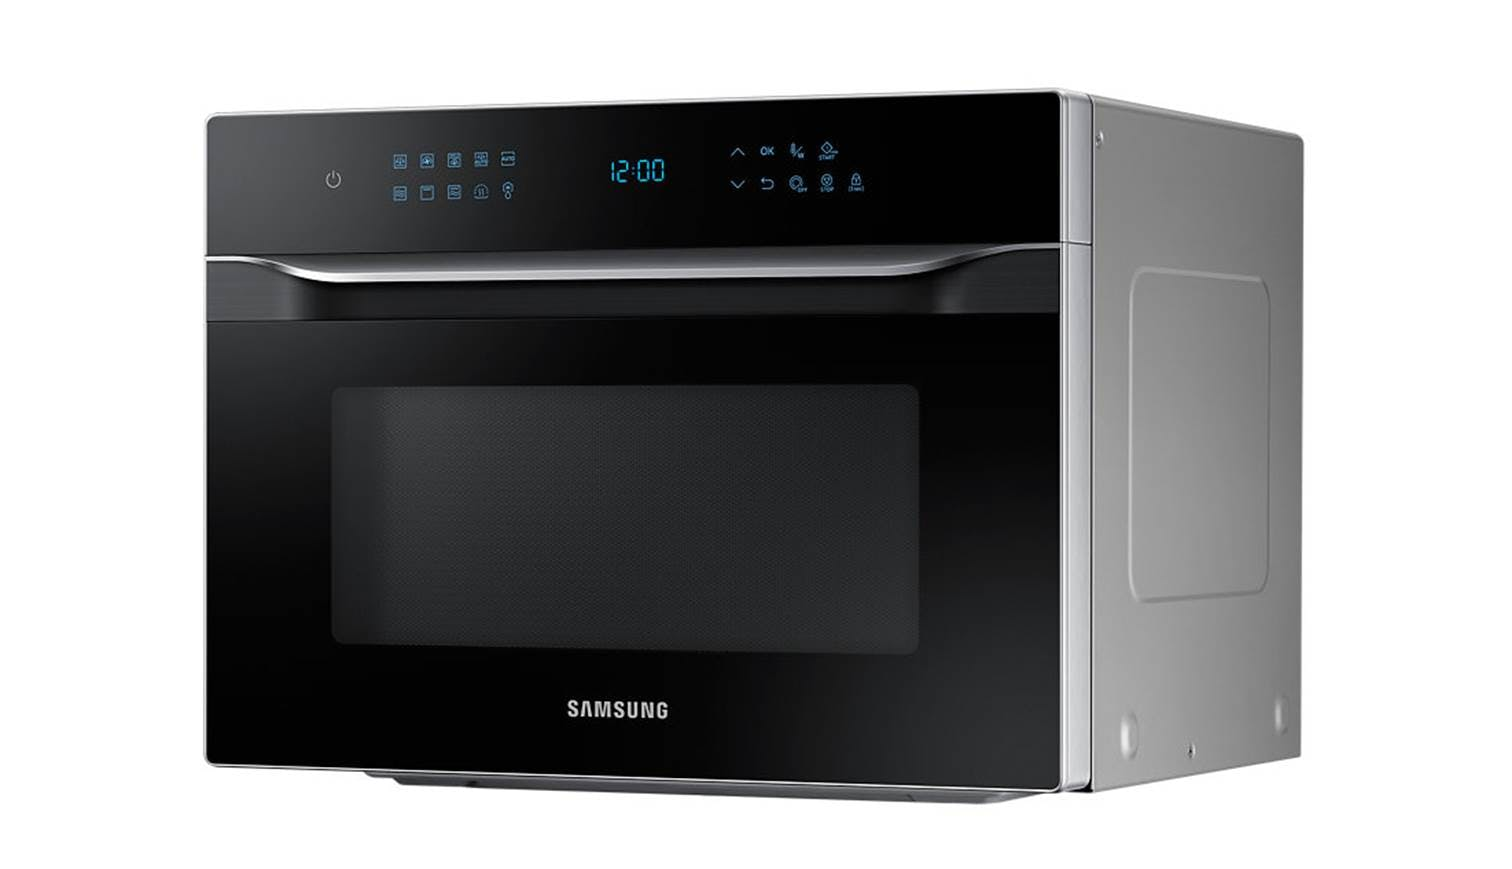 Samsung Mc 35j8088lt Sp Grill Convection Microwave Oven